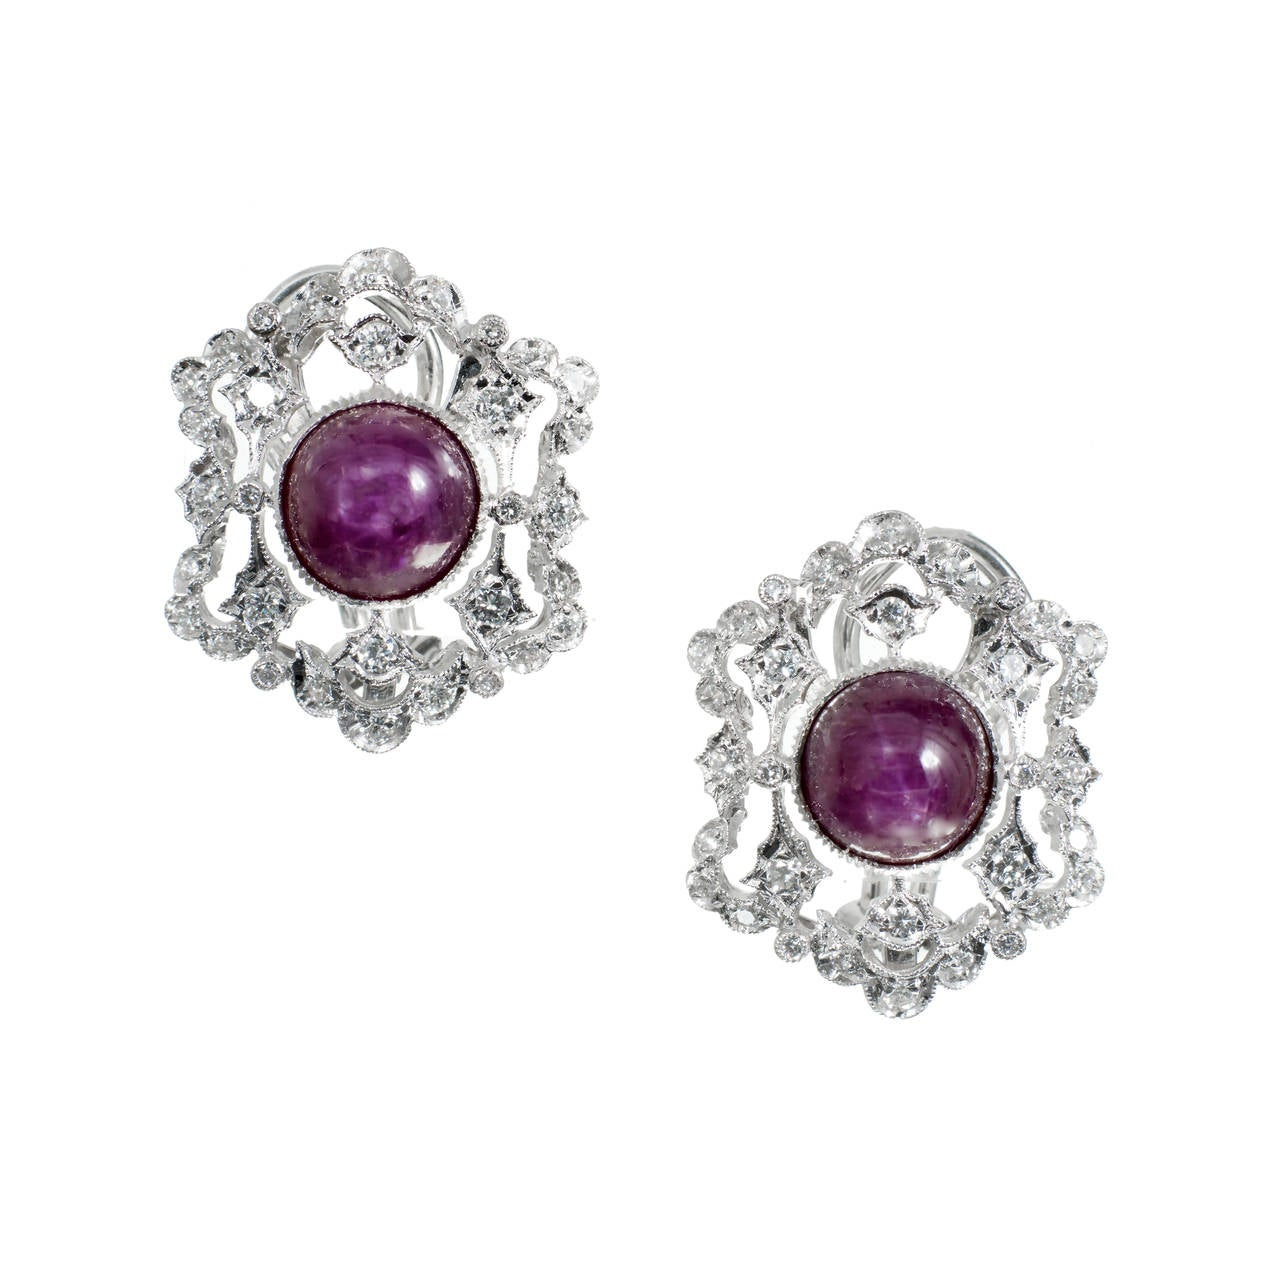 GIA Certified 5.00 Carat Ruby Diamond White Gold Earrings For Sale